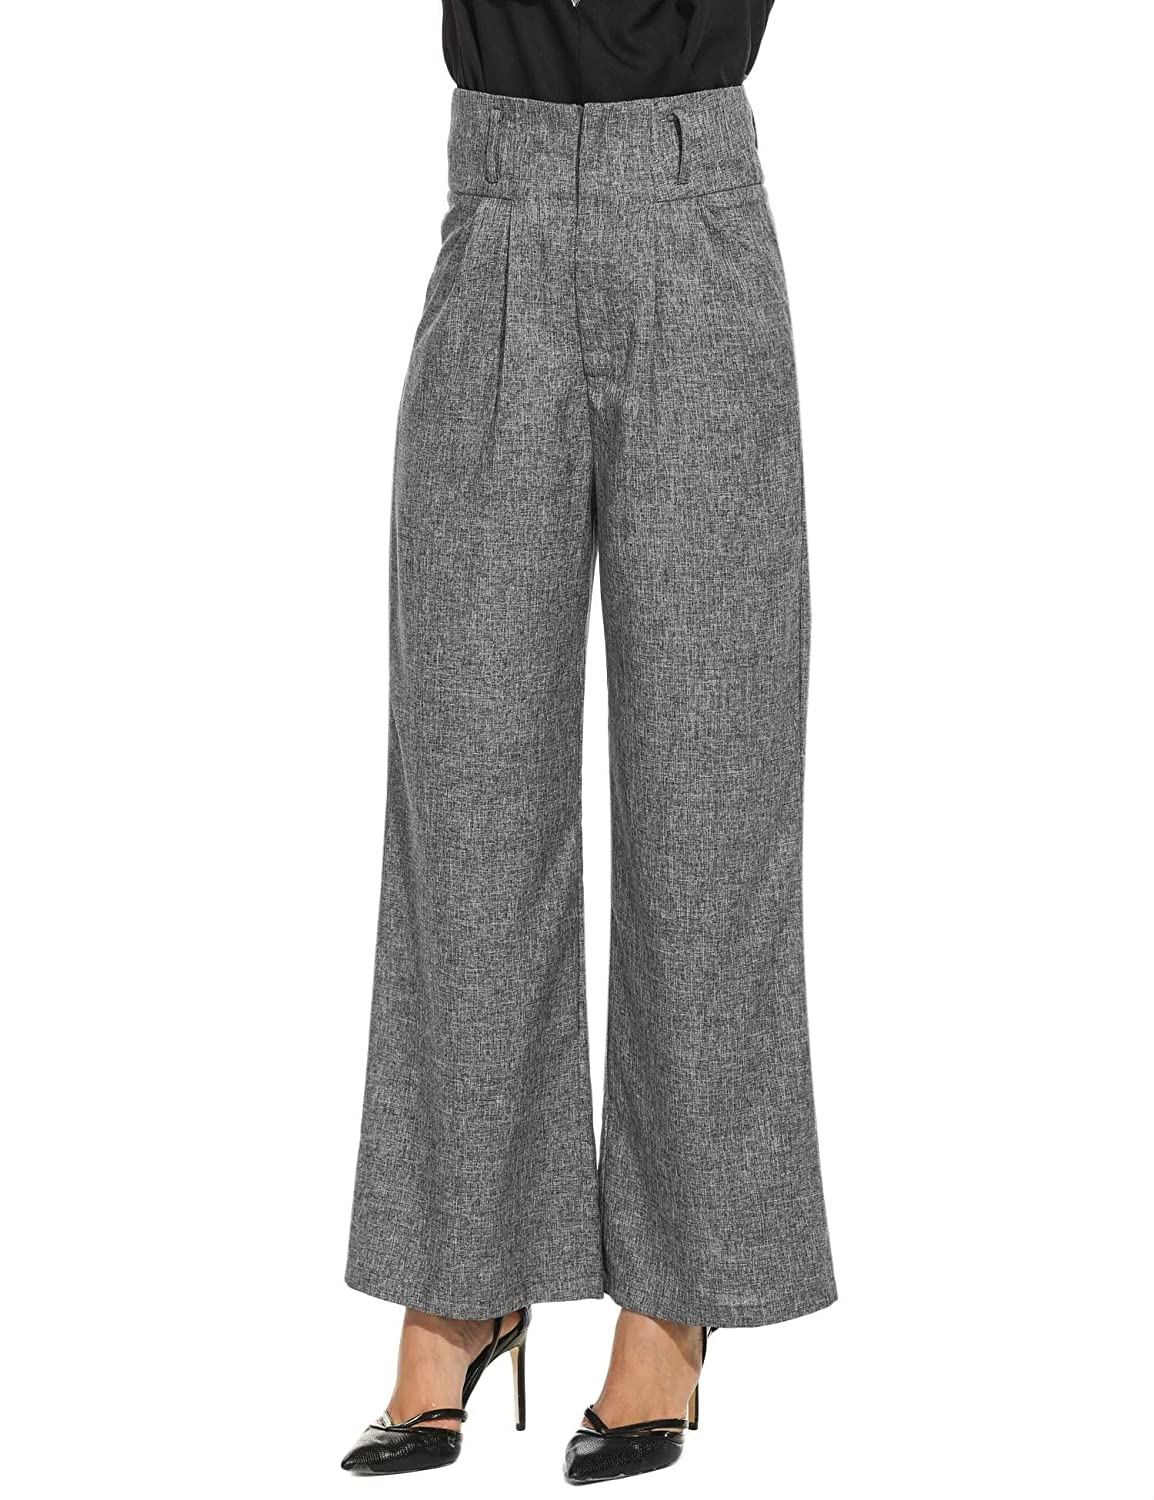 Vintage High Waisted Trousers, Sailor Pants, Jeans Zeagoo Womens Casual Superline Wide Flare Leg High Waist Zipper Solid Long Pants $27.99 AT vintagedancer.com